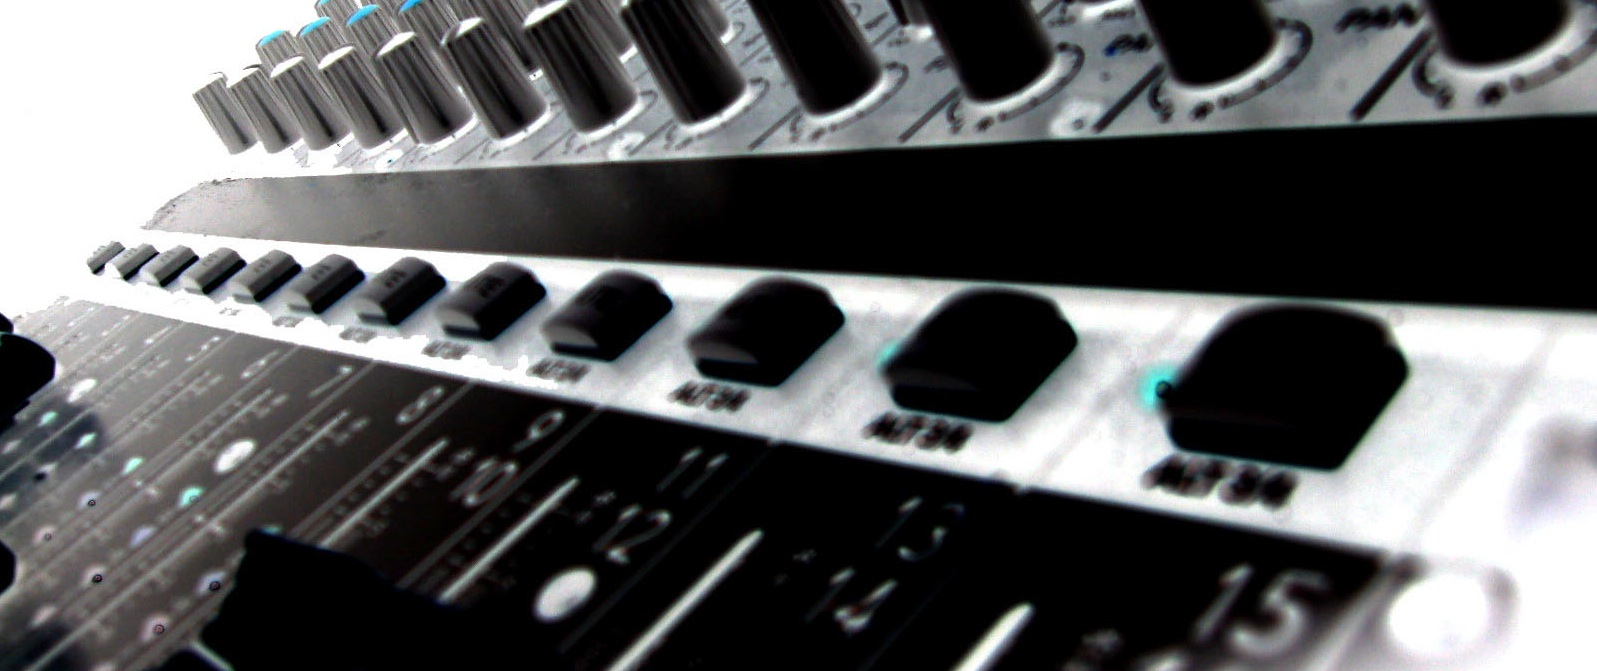 Mixing Board Invert Crop